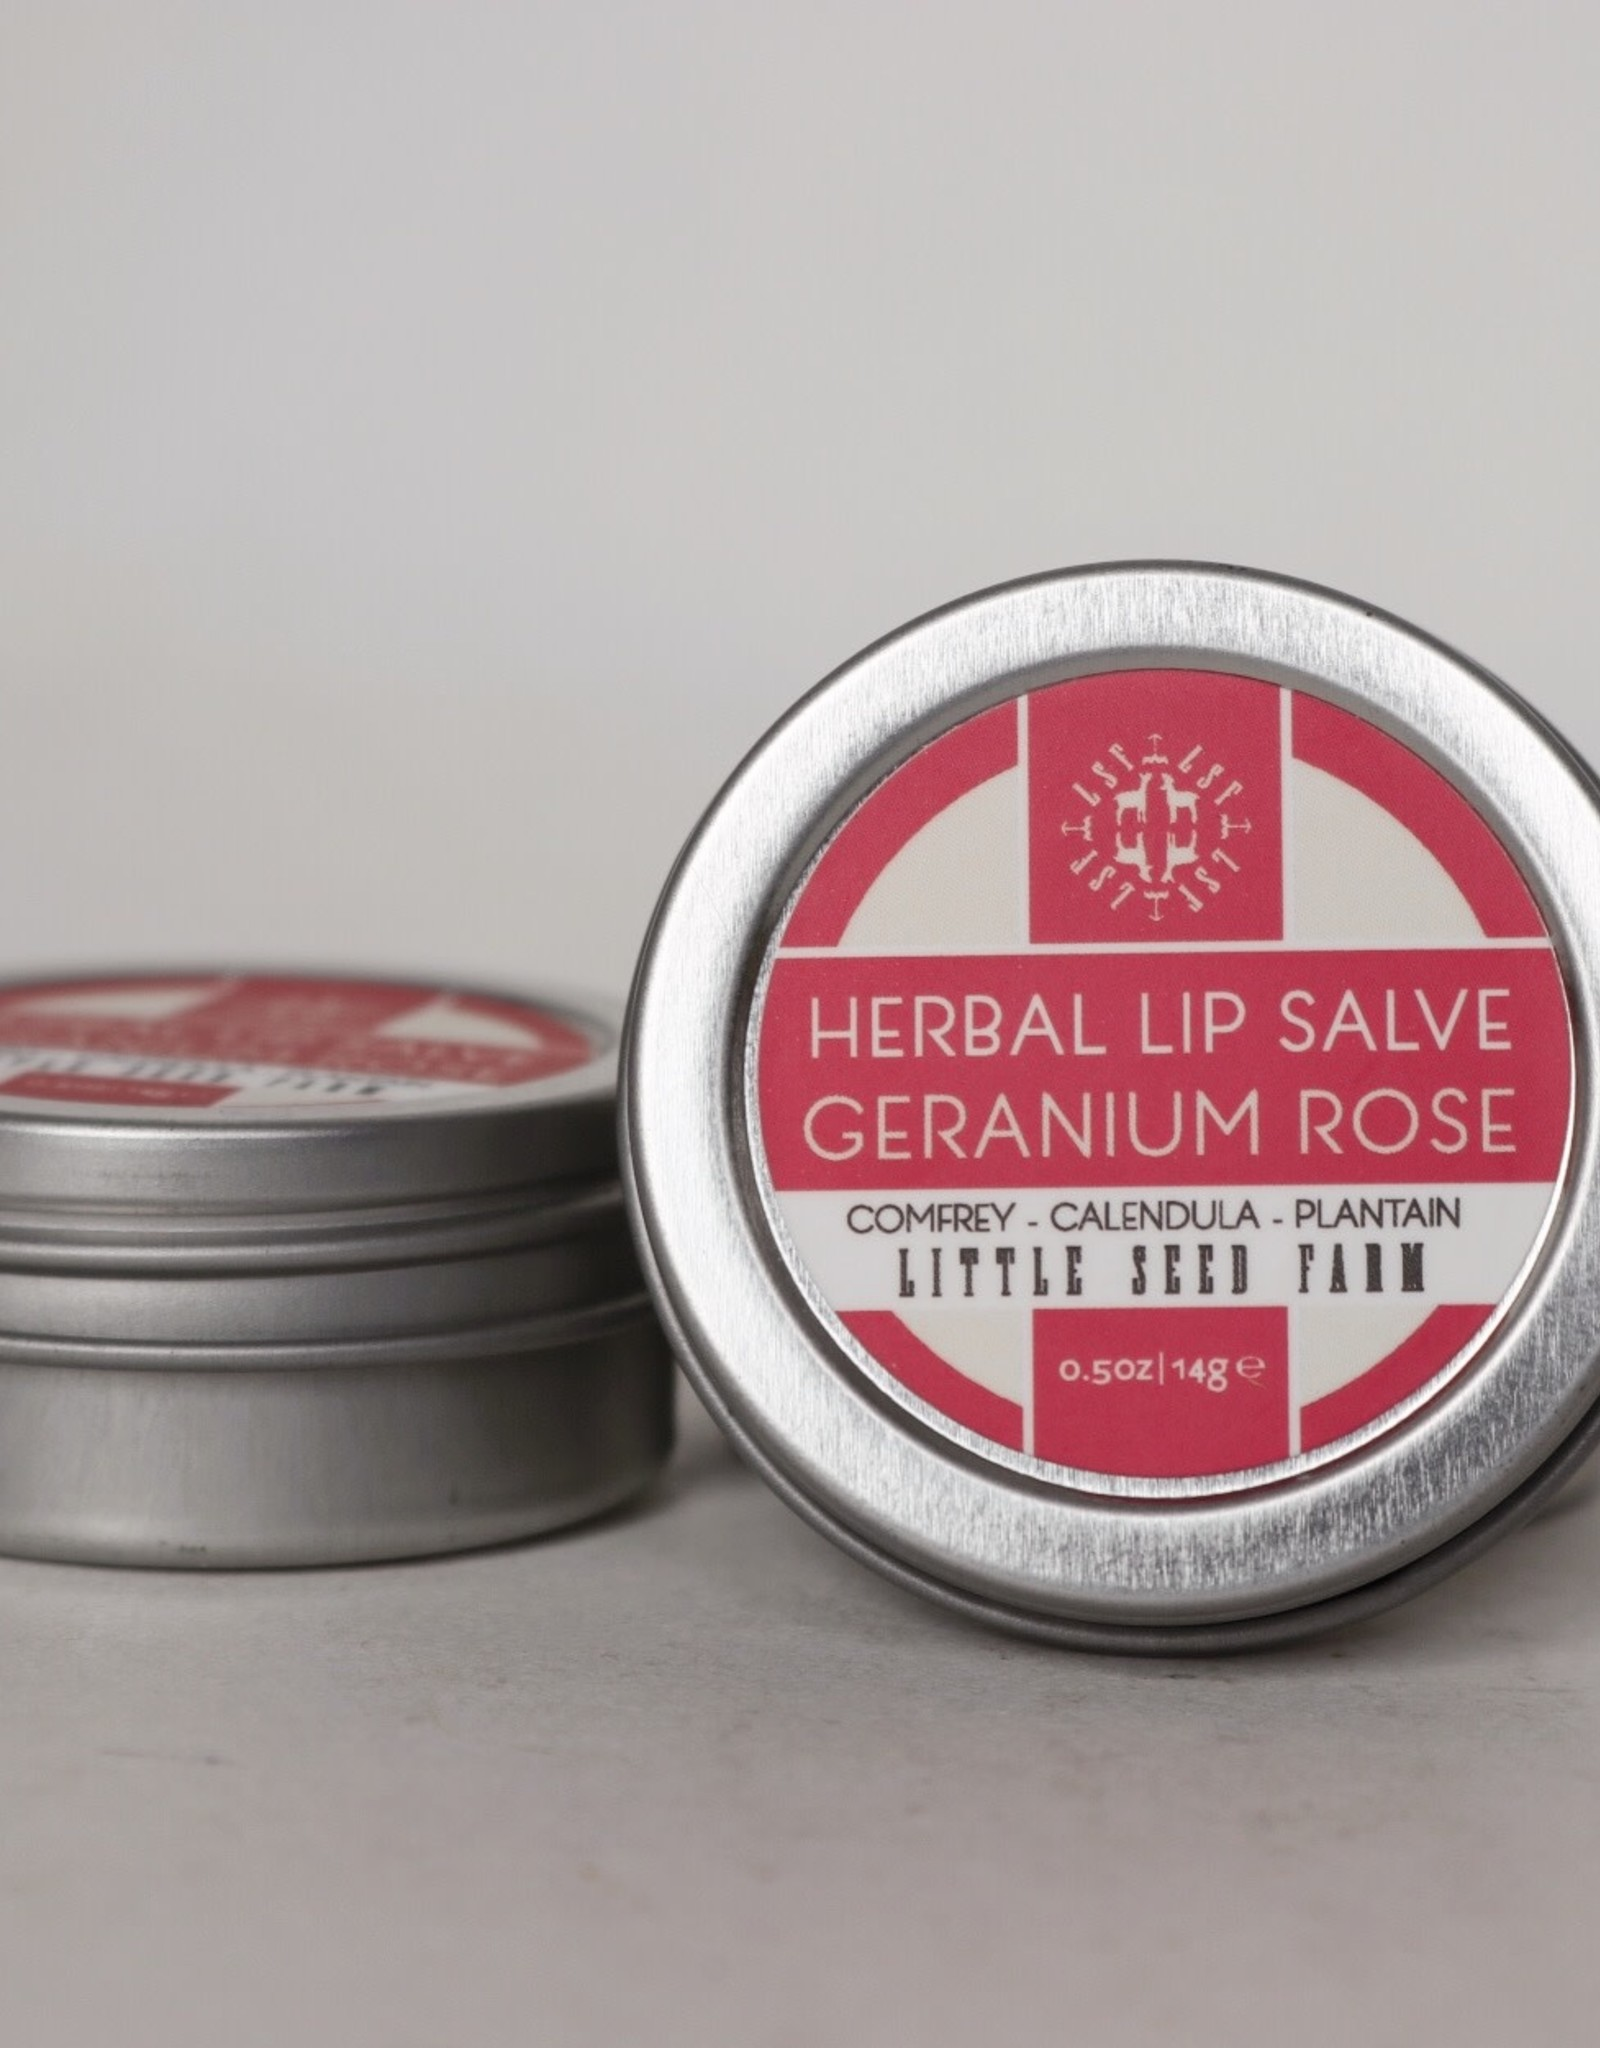 Little Seed Farm Lip Salve